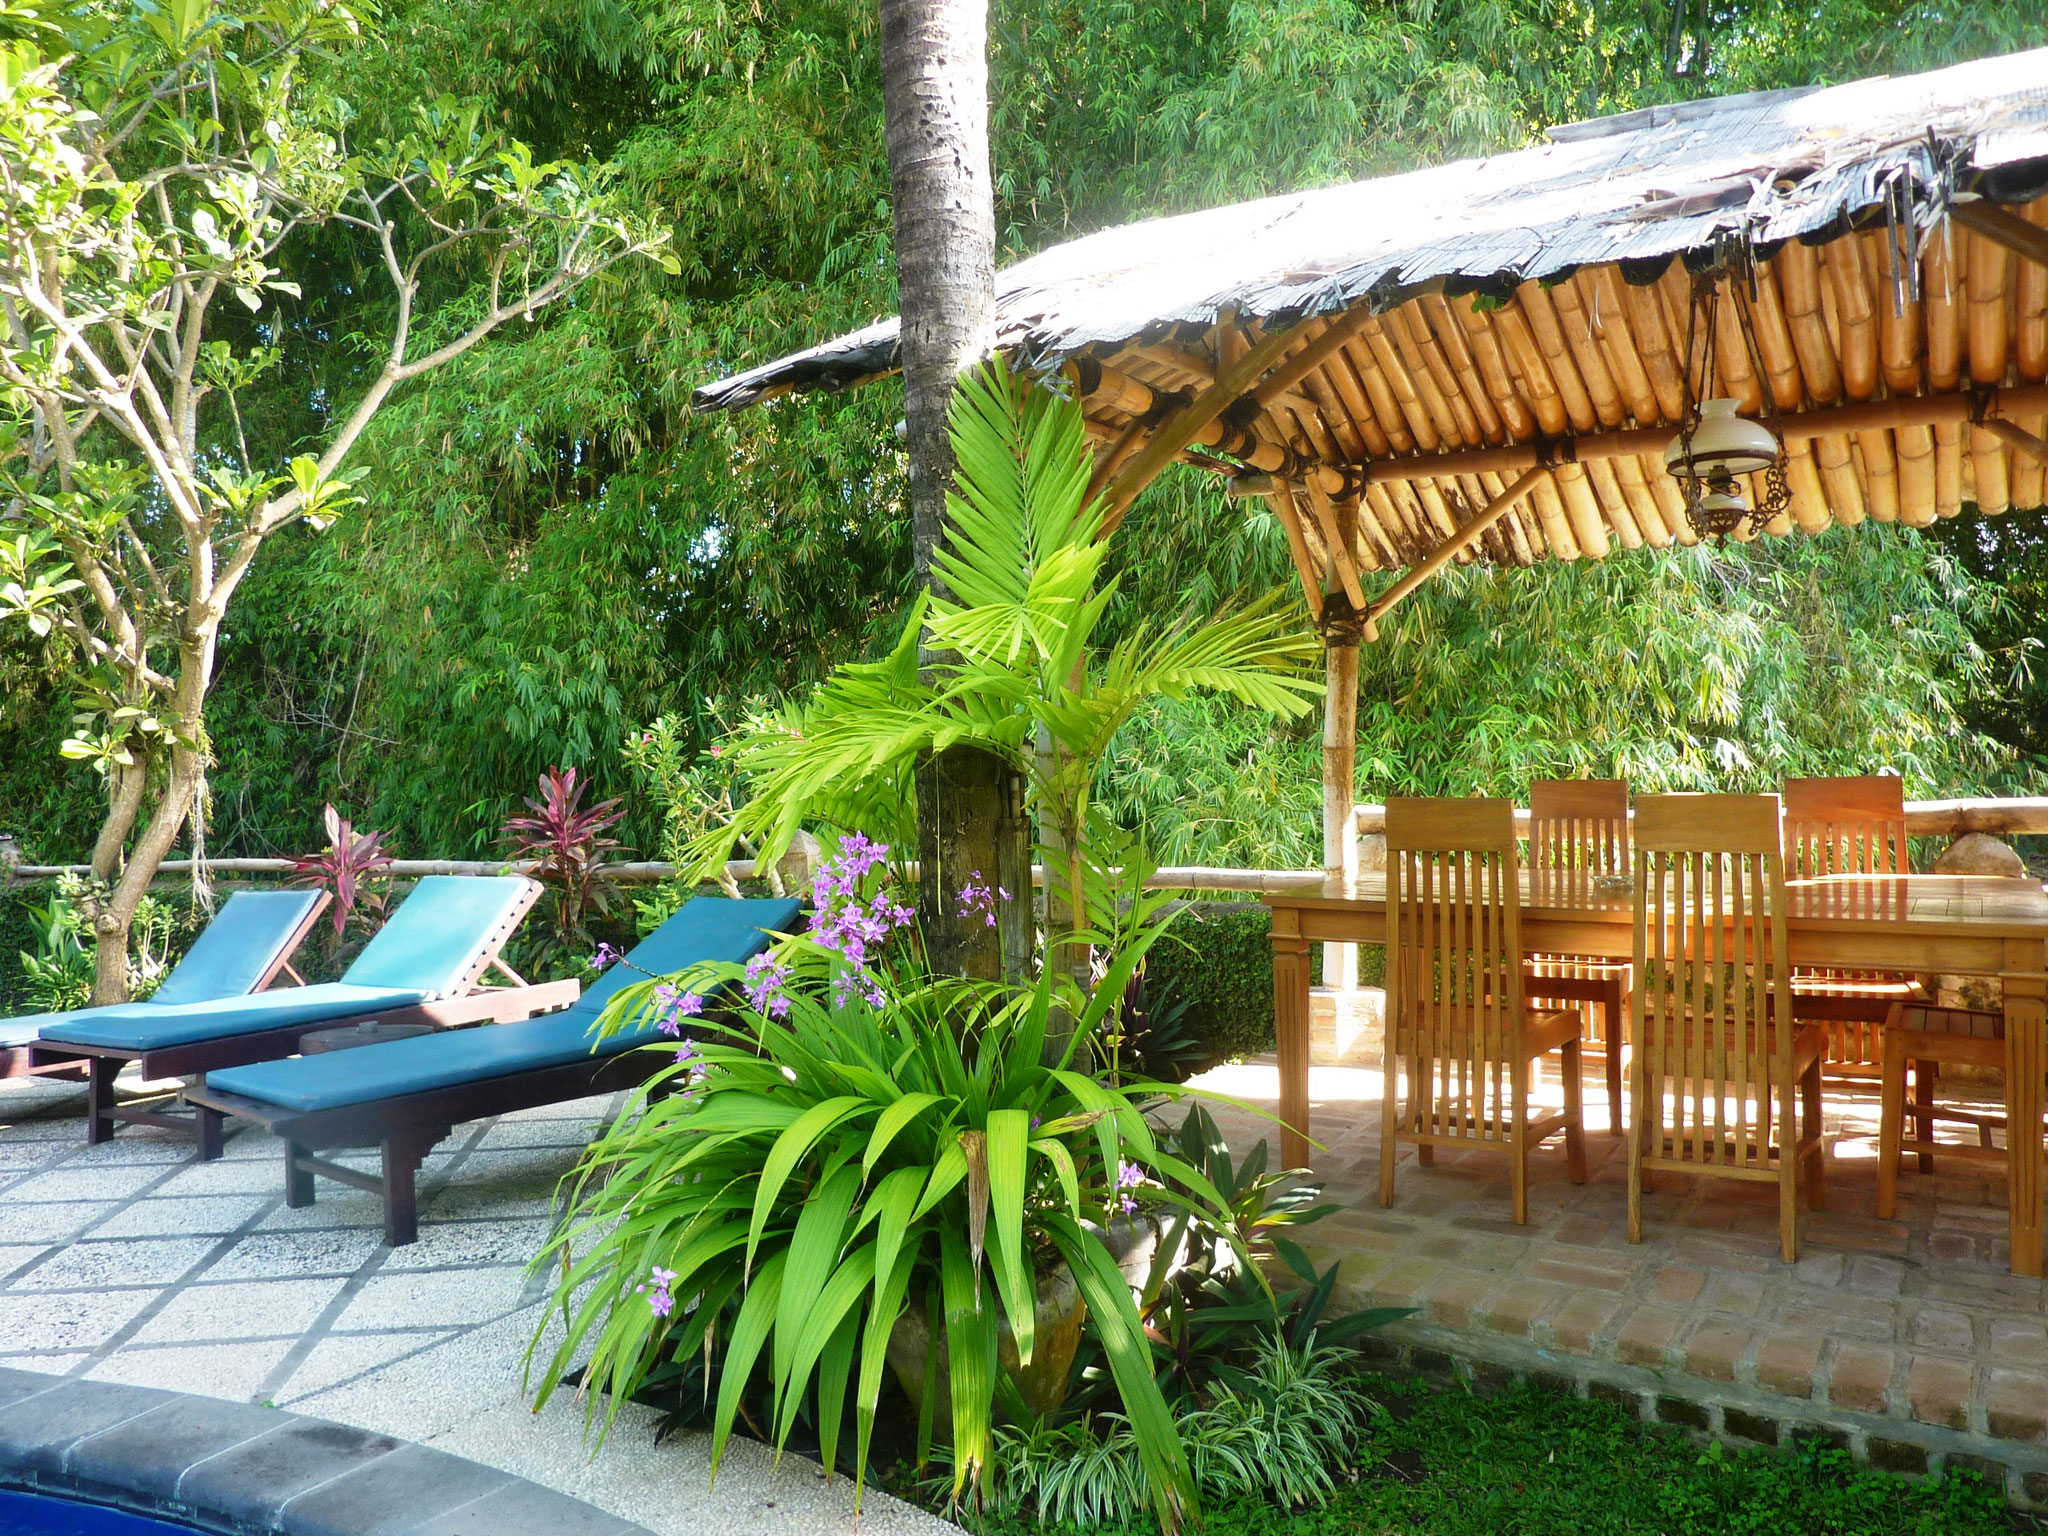 Deck chairs and the bamboo hut